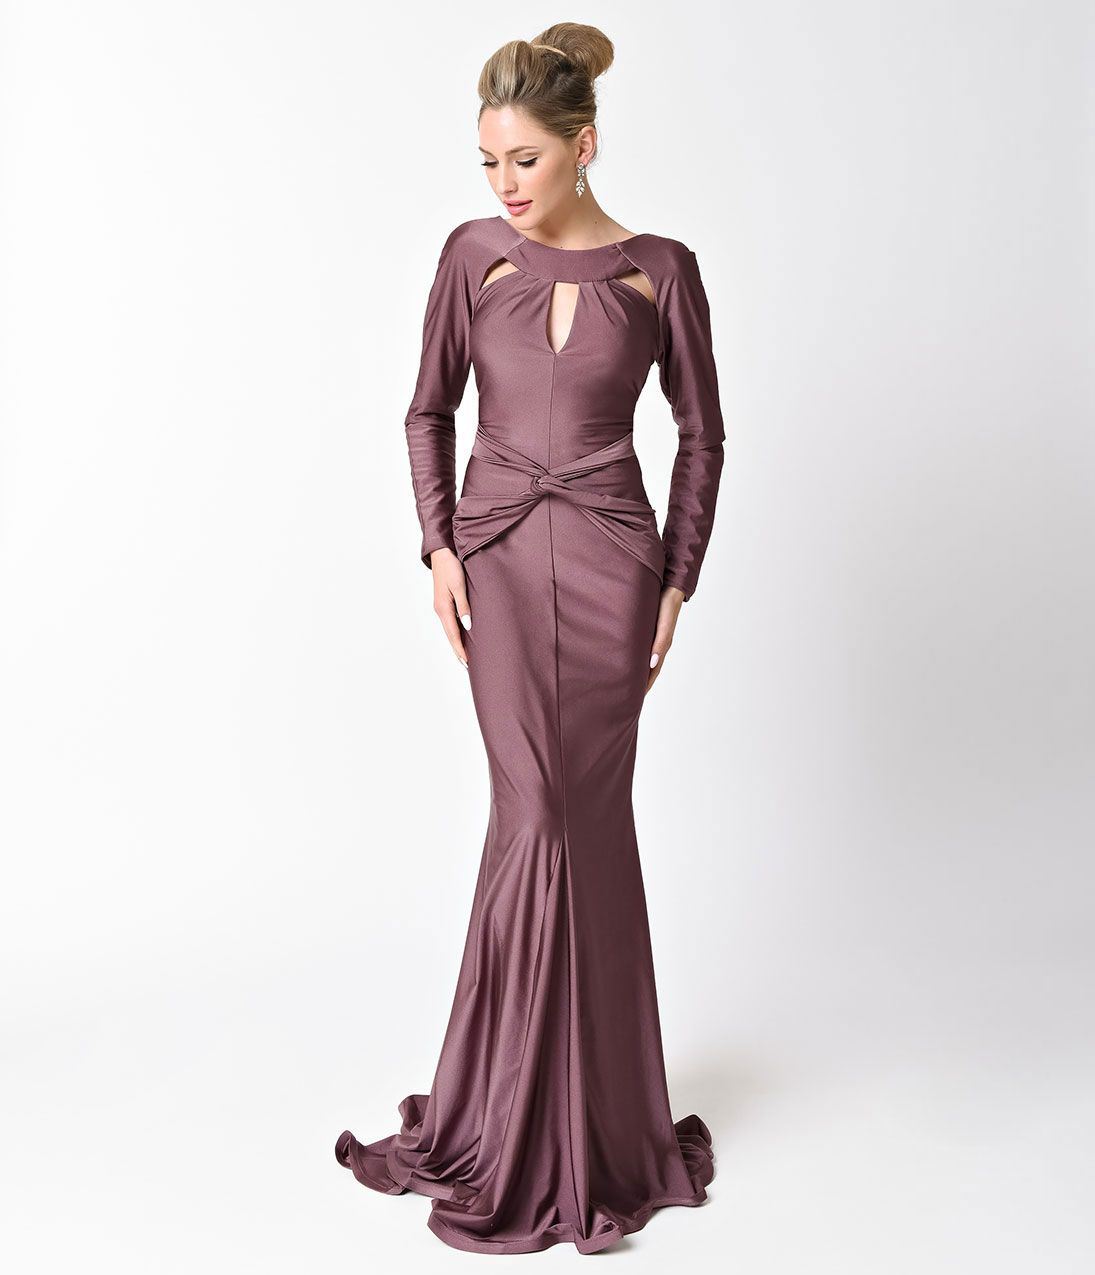 c4a59998732 1930s Style Fashion Dresses May Queen Mauve Long Sleeve Low Back Long Dress  For Prom 2017 Size 16  153.00 AT vintagedancer.com